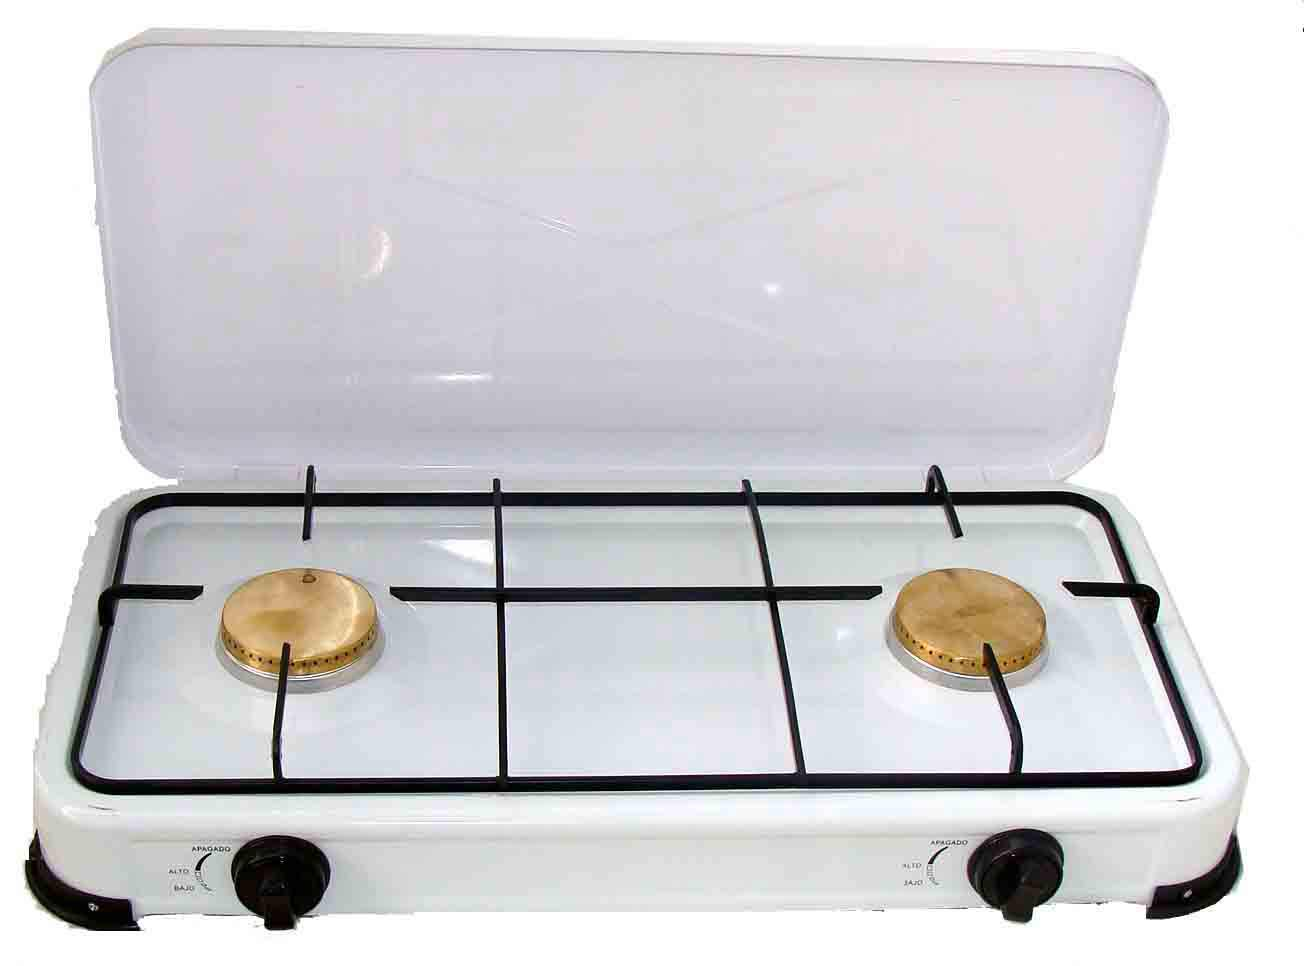 european gas powered stove with top cover